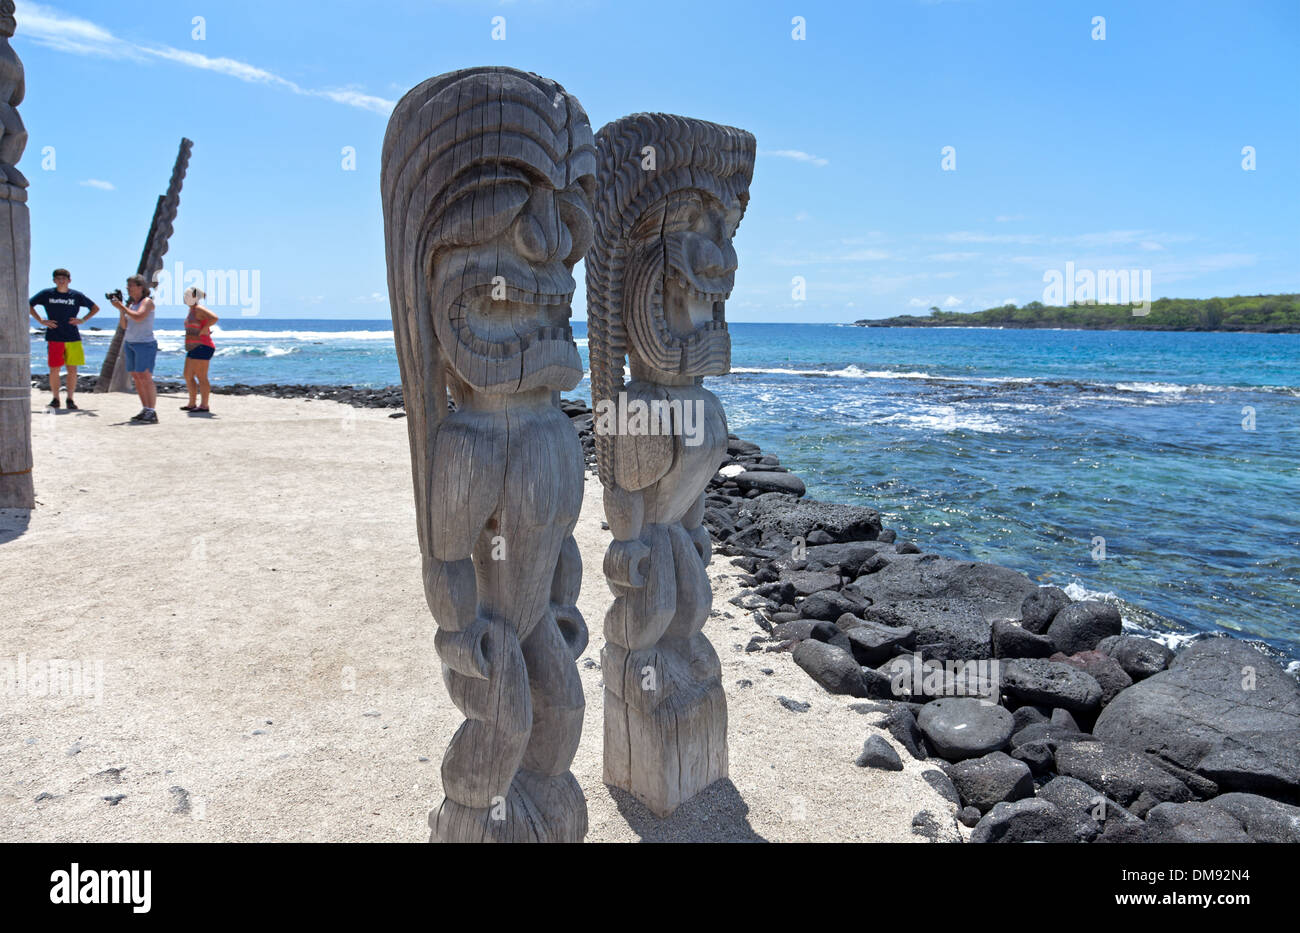 Kona Coast: Pu'uhonua o Honaunau National Historical Park - Ki'i tikis guard the Hale o Keawe. Editorial use only. - Stock Image